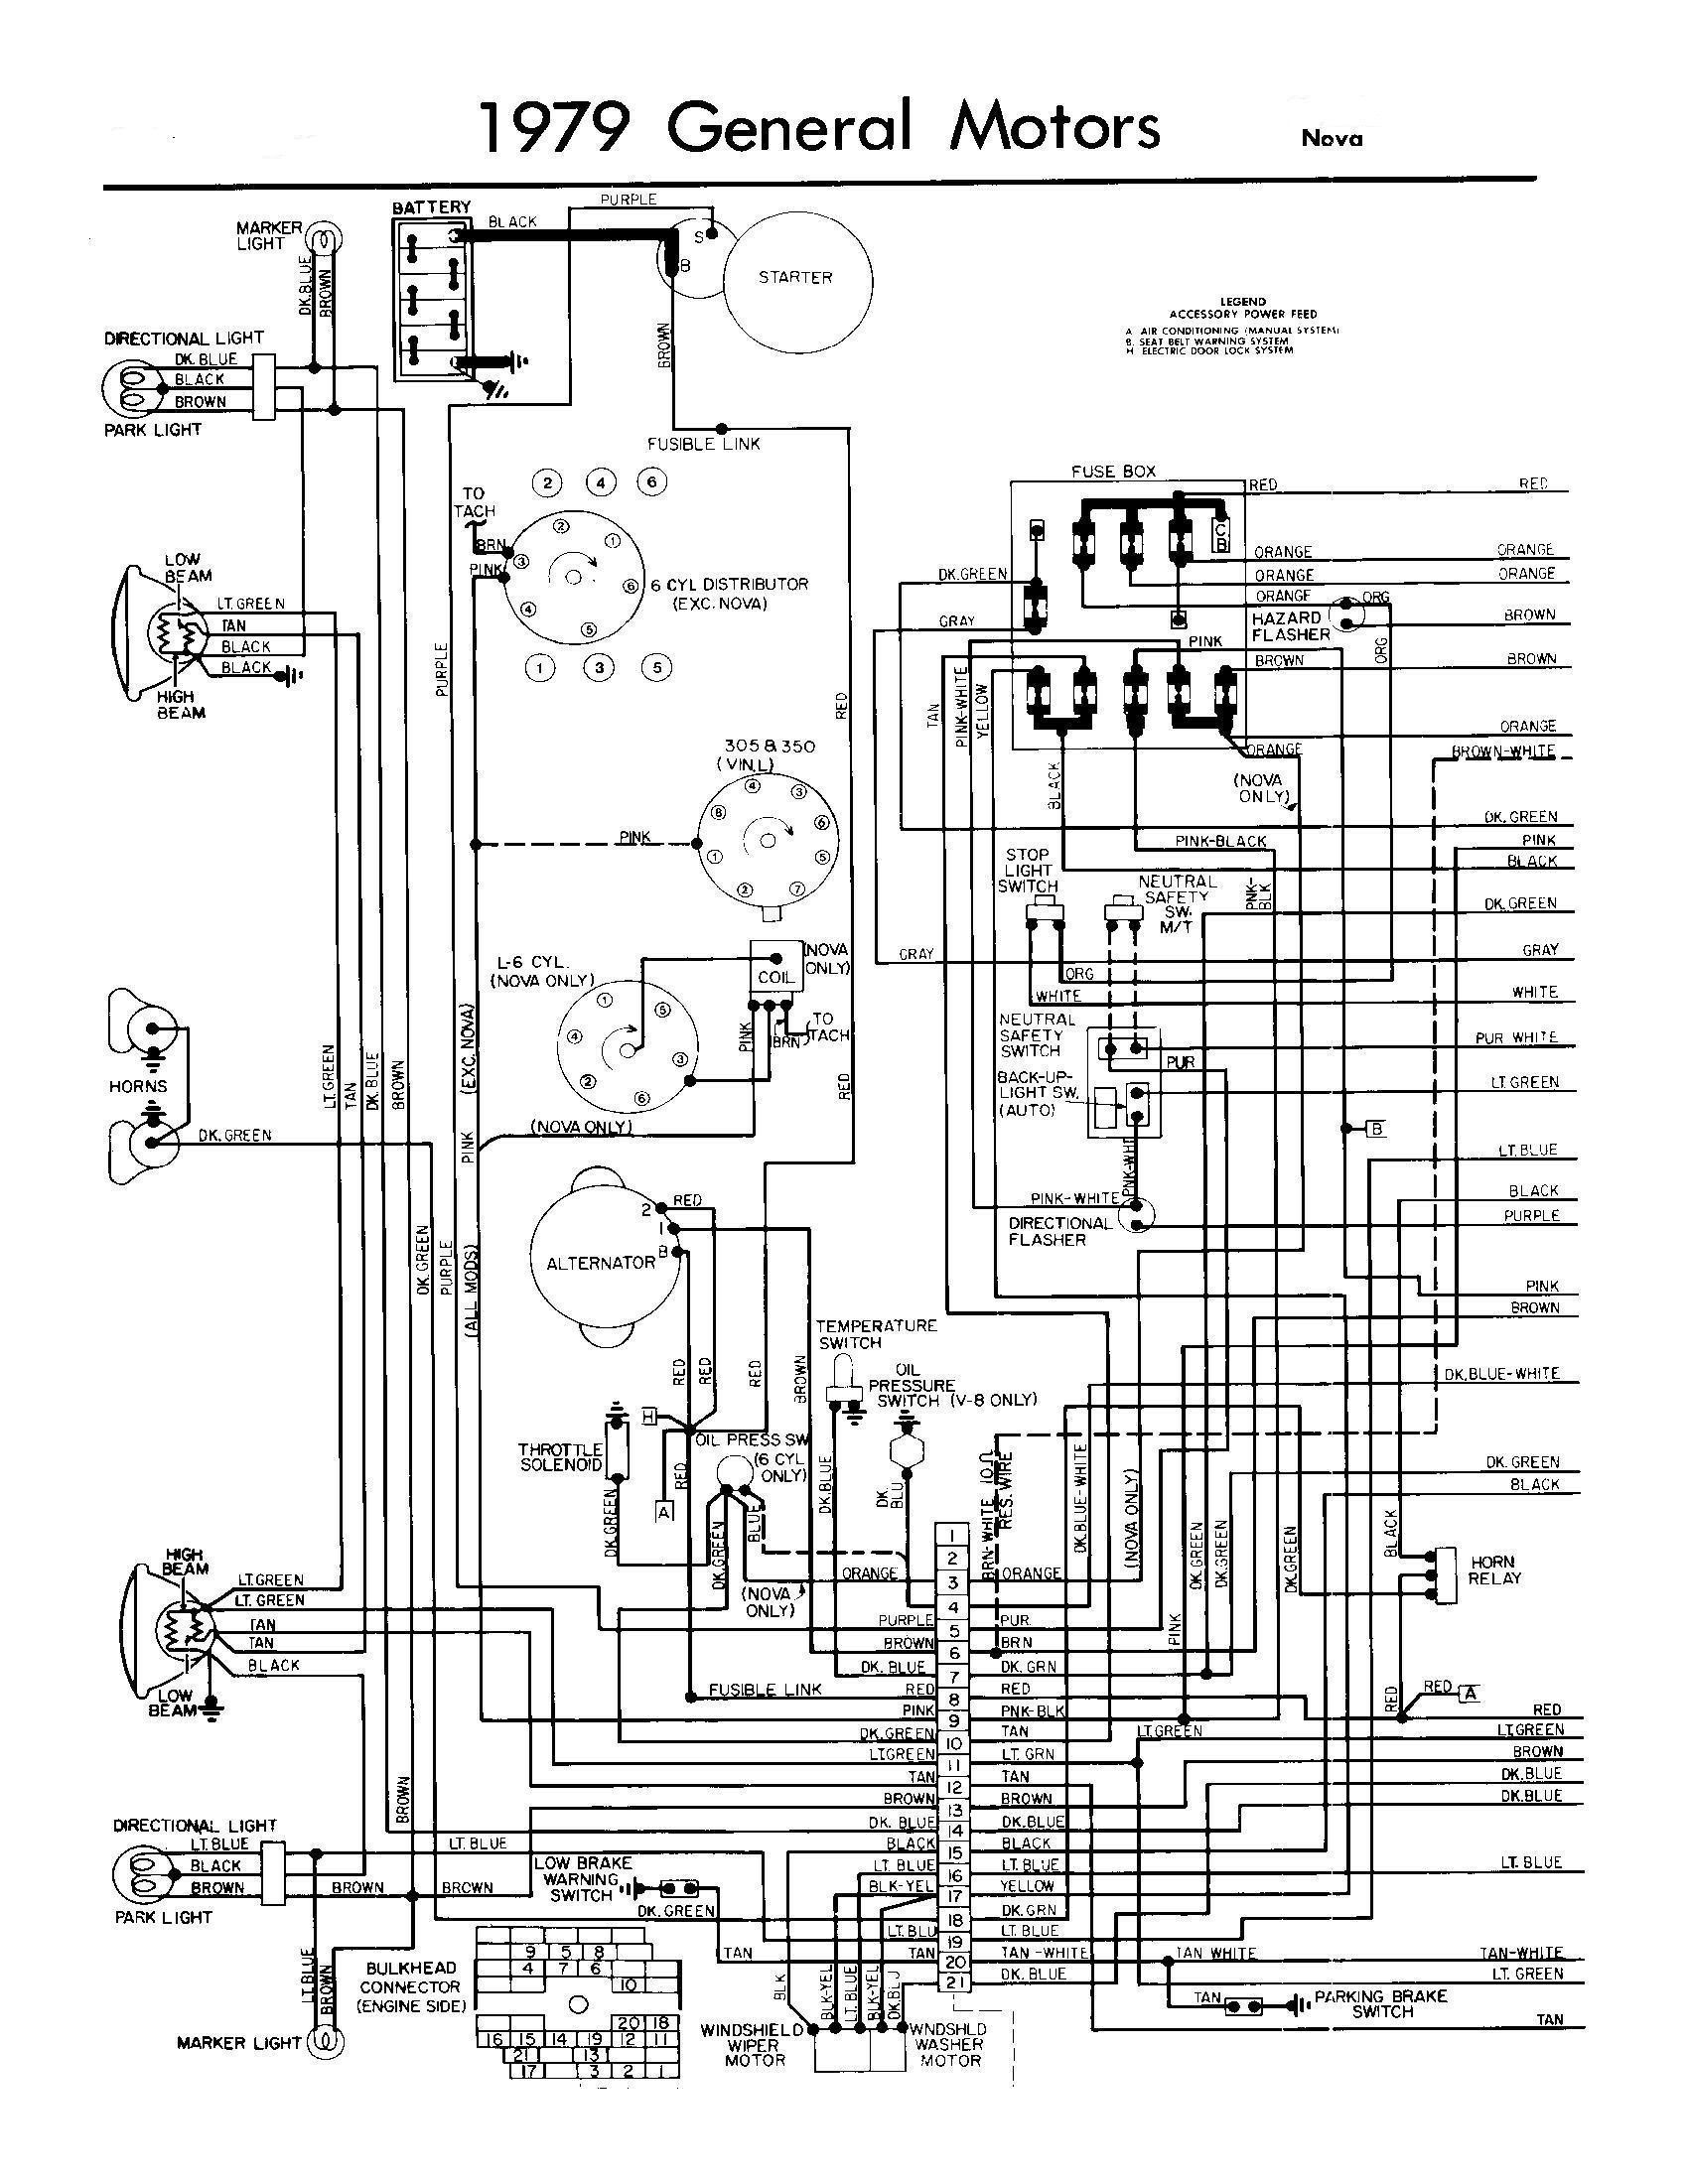 2007 Chevy Silverado Transmission Diagram Overdrive Chevrolet Wiring Wire Center 1986 Camaro Schematic Custom U2022 Rh